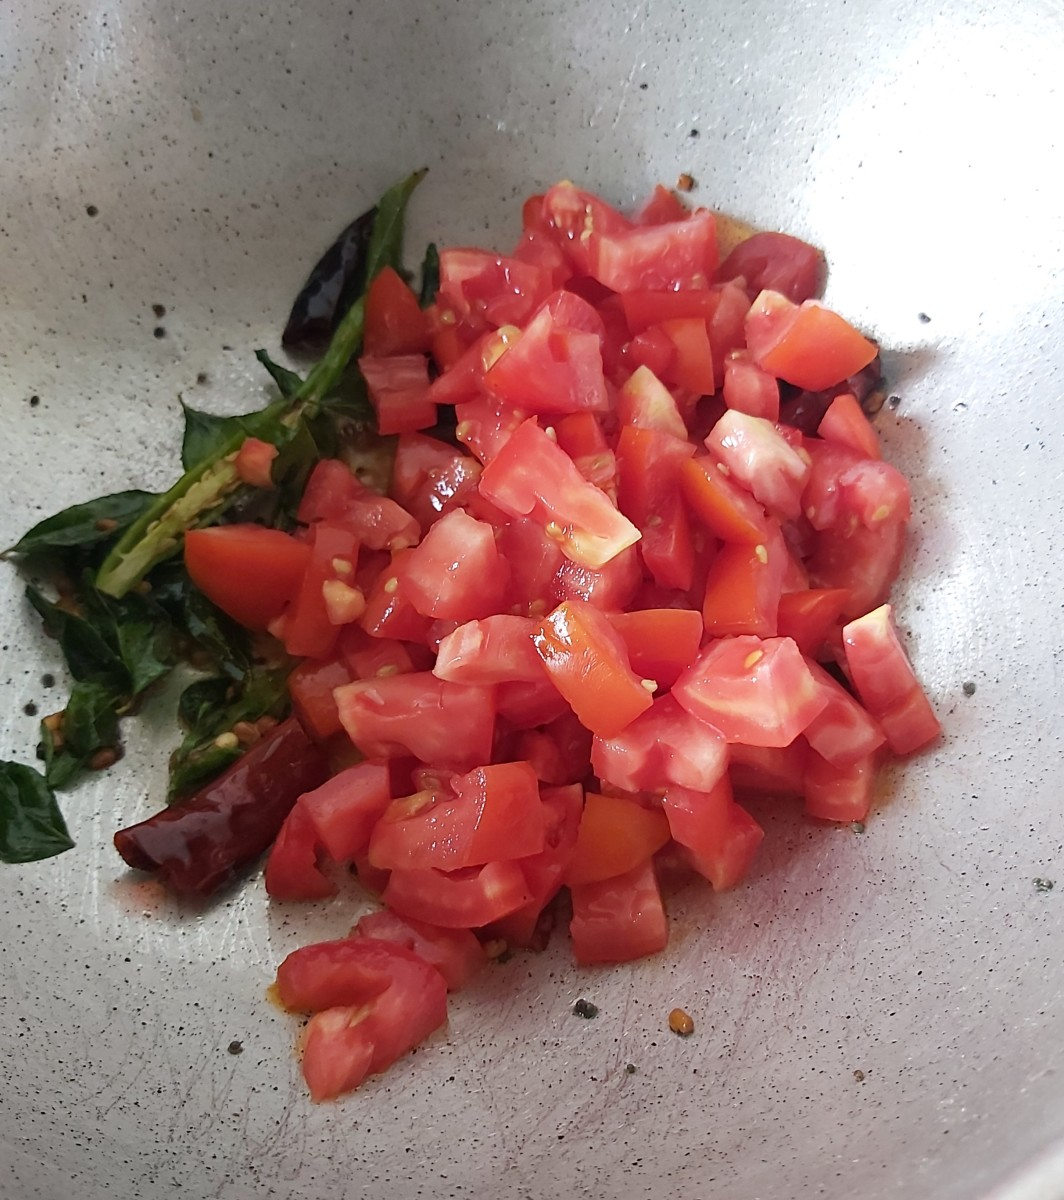 Add the chopped tomatoes (and any other vegetables you may be adding).